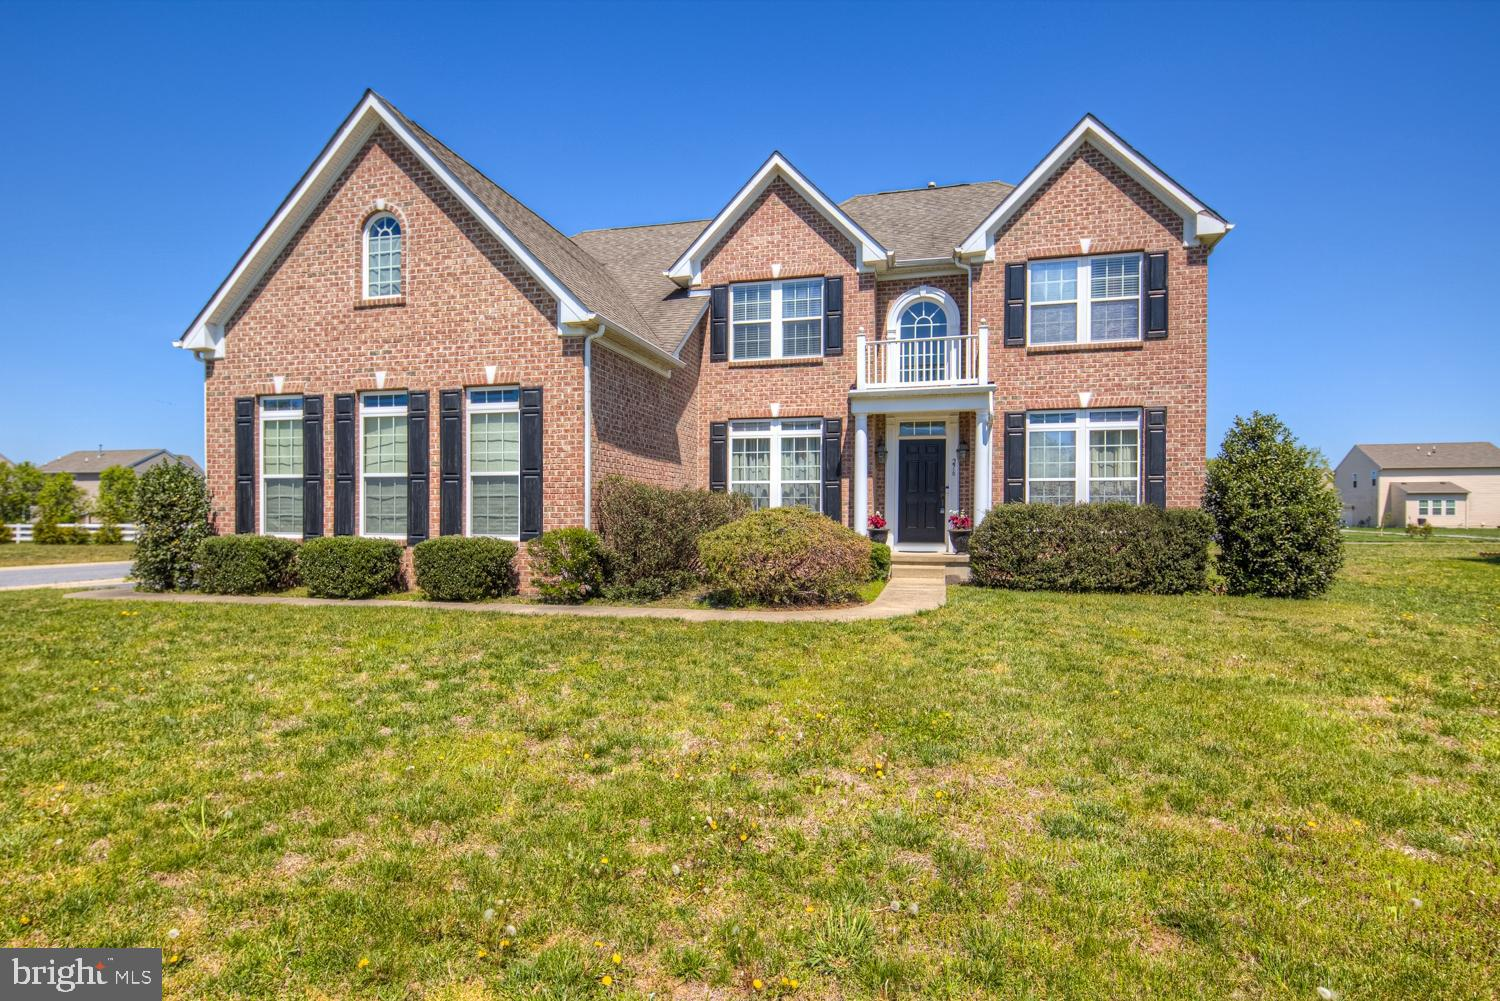 This beautiful home boasts an open and airy floor plan and plenty of room to make it into your own. Located on a premium corner lot within a short walk to Hazel Farms Community Center with Pool! Upon entering through the front door, you are greeted by a wide center hall foyer that leads past the large formal living and dining rooms. Just beyond the formal dining sits a bright and spacious gourmet kitchen that features a pantry, upgraded 42-inch cabinets, recessed lighting, stainless steel appliances, granite counter tops and a gourmet island with seating. It is a chef's paradise that overlooks the beautiful morning room, great for entertaining family and friends. The bright and airy morning room leads to the backyard with a large custom patio and fire pit perfect for entertaining. Back inside, the kitchen is open to the large family room with a true open floor plan, columns and a beautiful fireplace flanked by a wall of windows. Off the family room is an office/study room, perfect for working from home, or providing a serene dedicated space for kids to do homework. Upstairs there are 4 bedrooms and a laundry room. The three secondary bedrooms share a full bathroom that features dual vanity on this level. Rounding out the upstairs is the Owner's Suite which features walk in closet, seating area, a large bathroom with a tile shower with seating, soaking tub, and double vanity sinks. Back downstairs in the finished basement there is a ton of additional finished space including a rec room, a home theater room and a full bath. Call today to schedule your private tour.